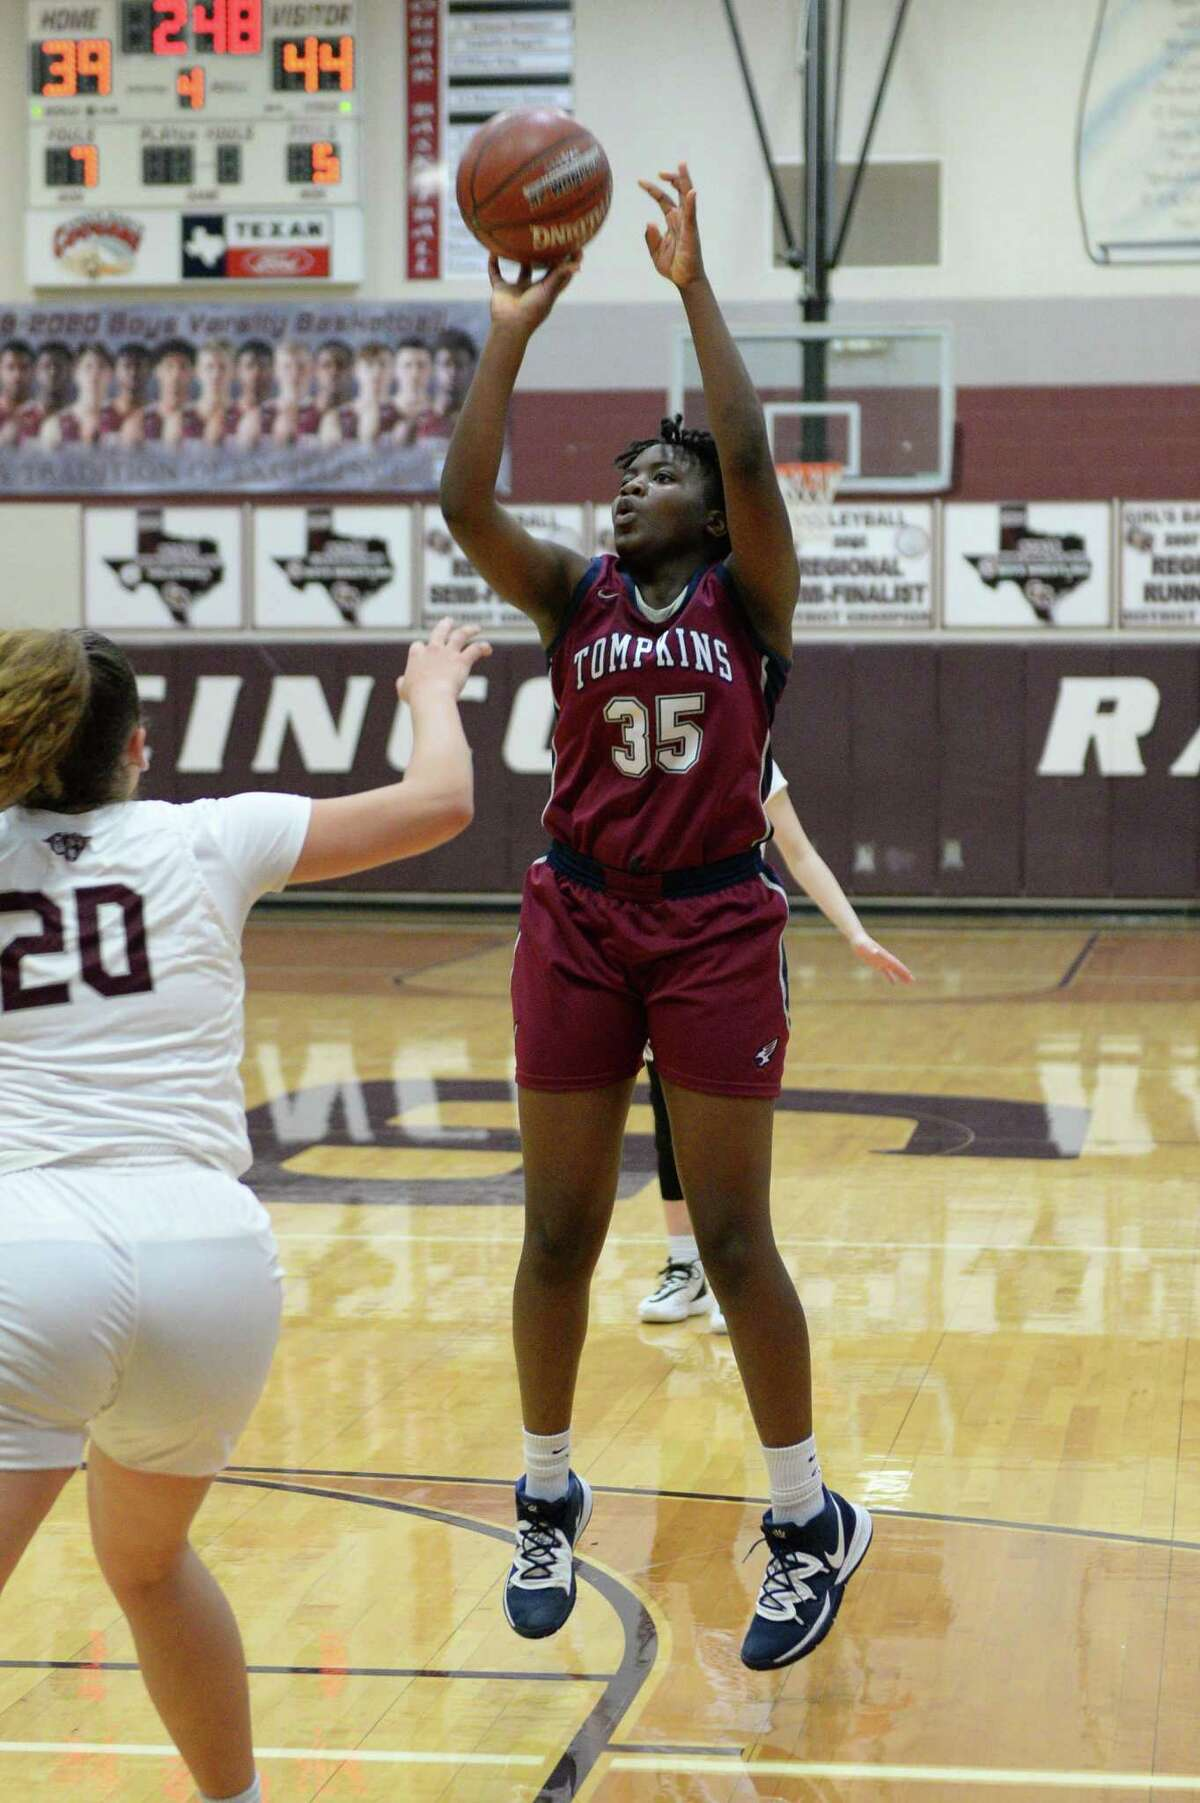 Fiyin Adeleye (35) of Tompkins attempts a jump shot during the fourth quarter of a 6A Region III District 19 Girls basketball game between the Cinco Ranch Cougars and the Tompkins Falcons on Friday, January 3, 2020 at Cinco Ranch HS, Katy, TX.